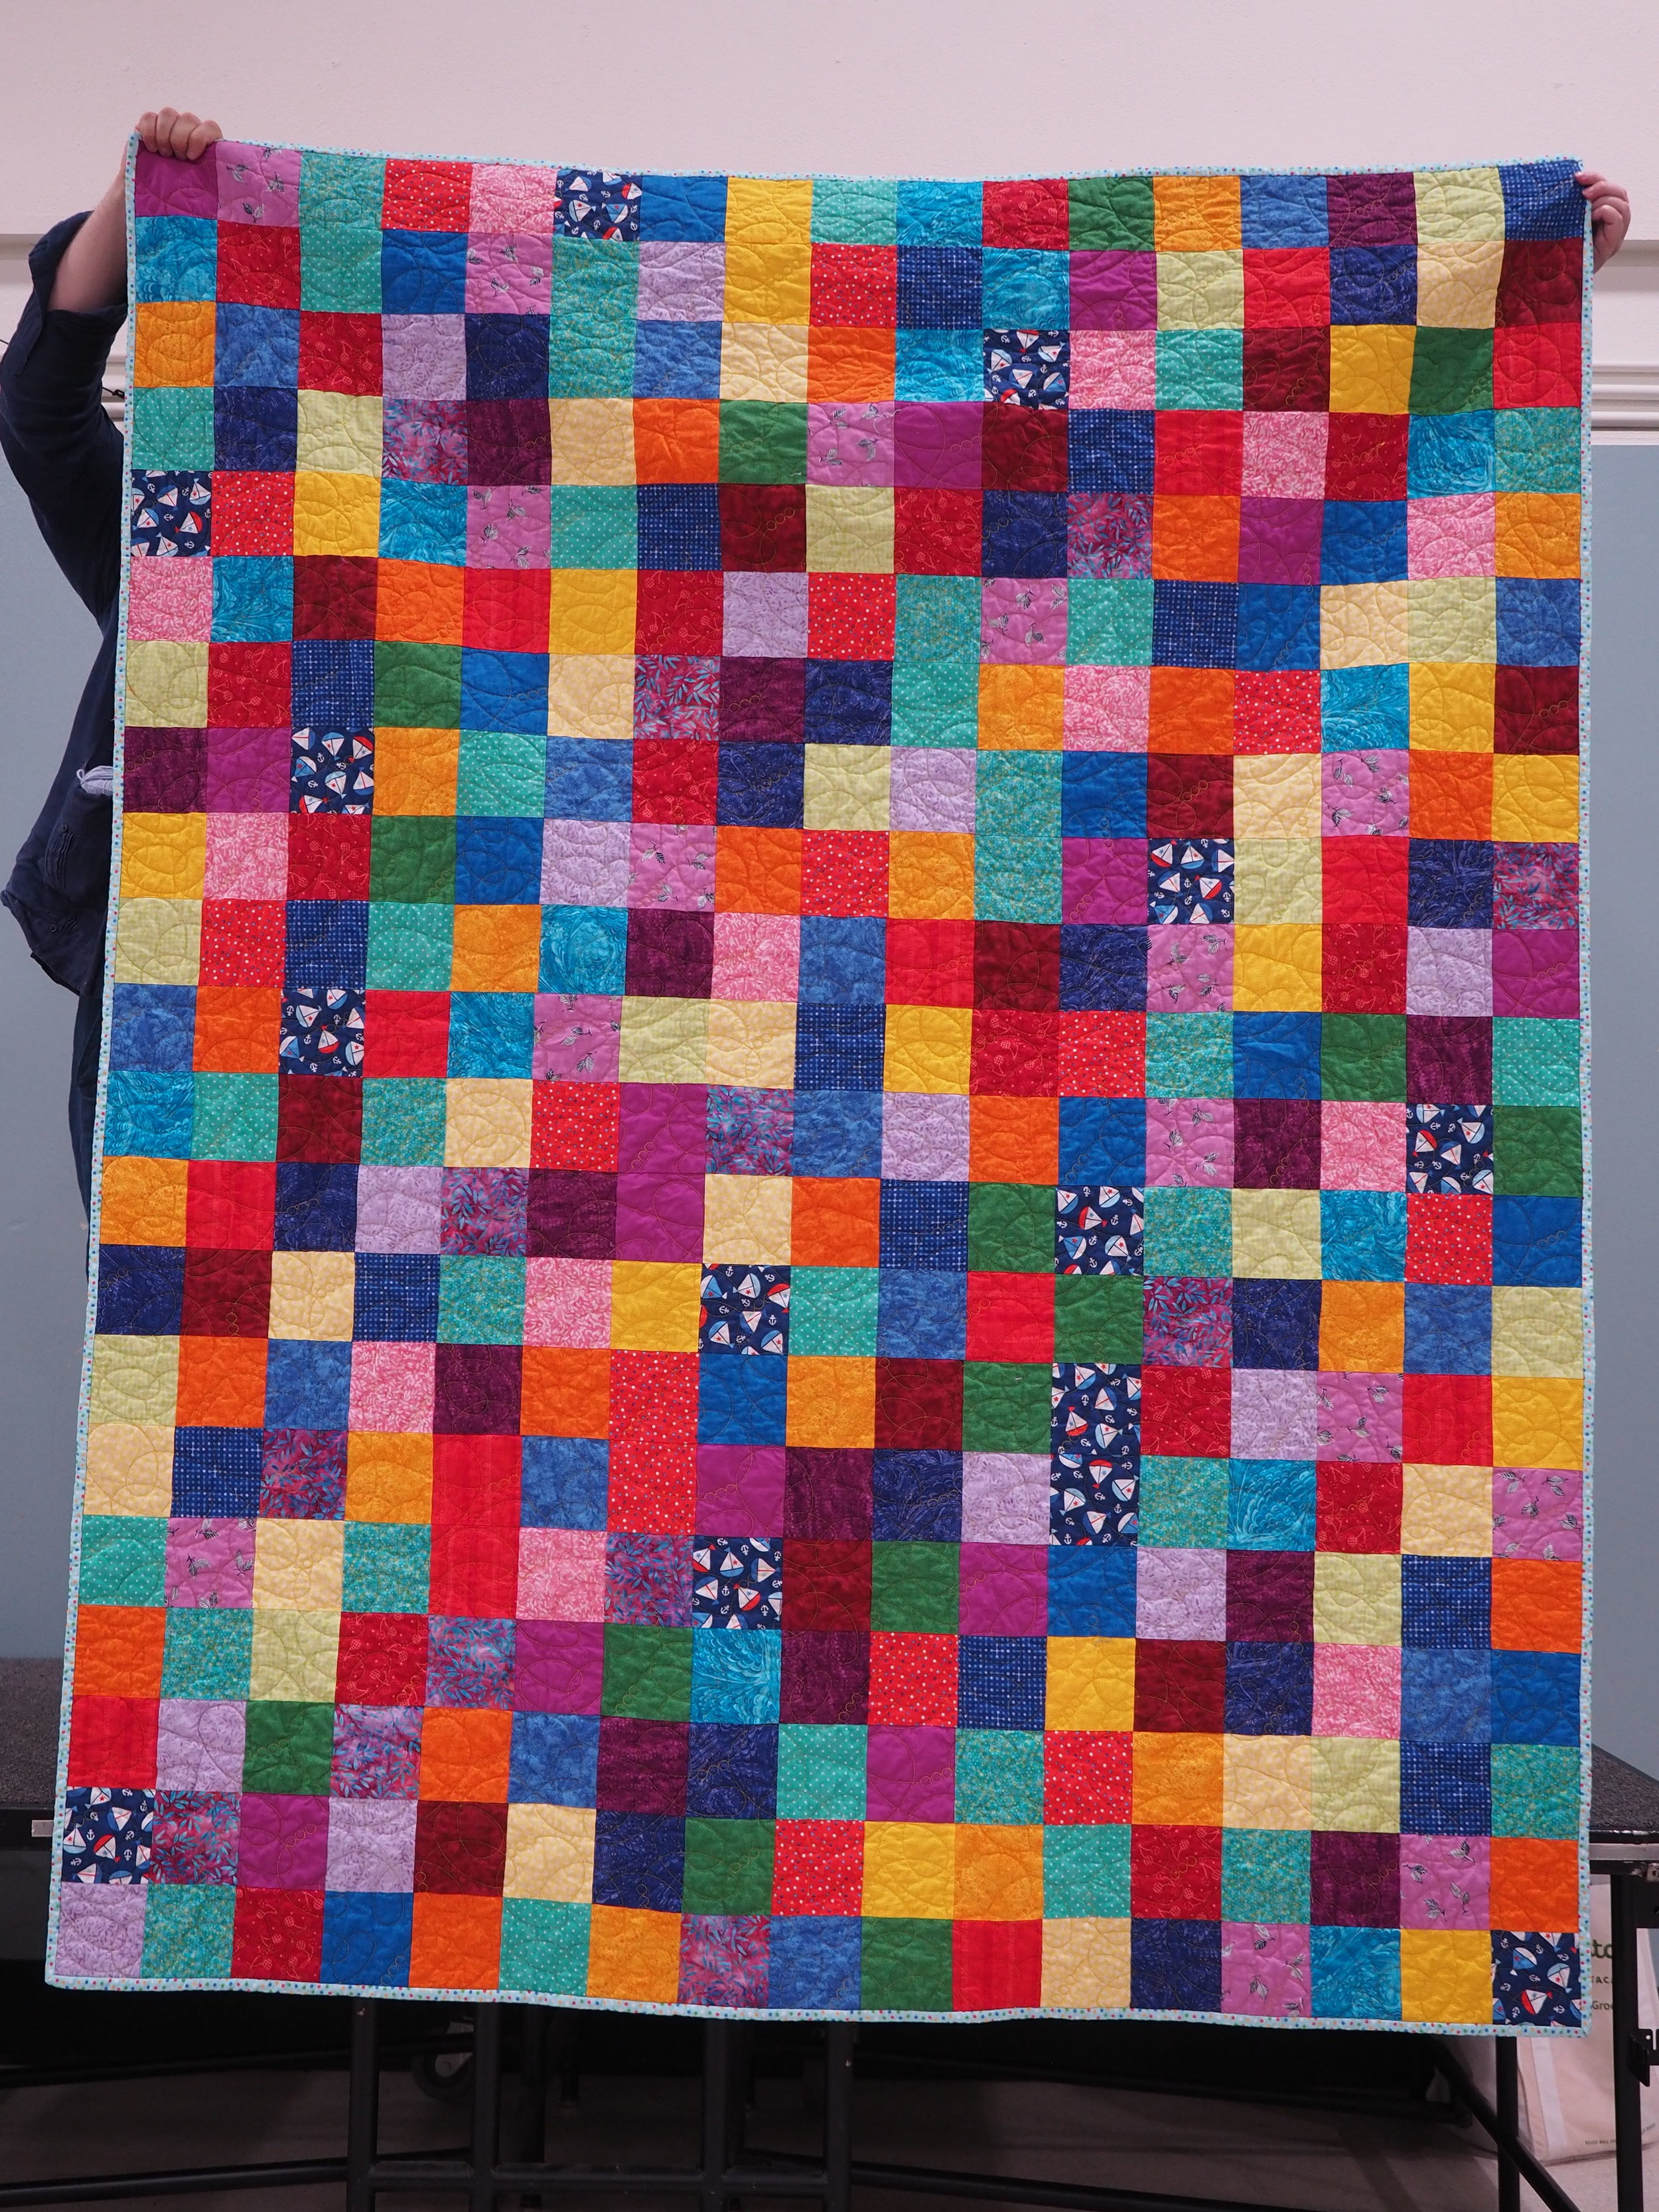 Dorm Quilt by Patty Turner